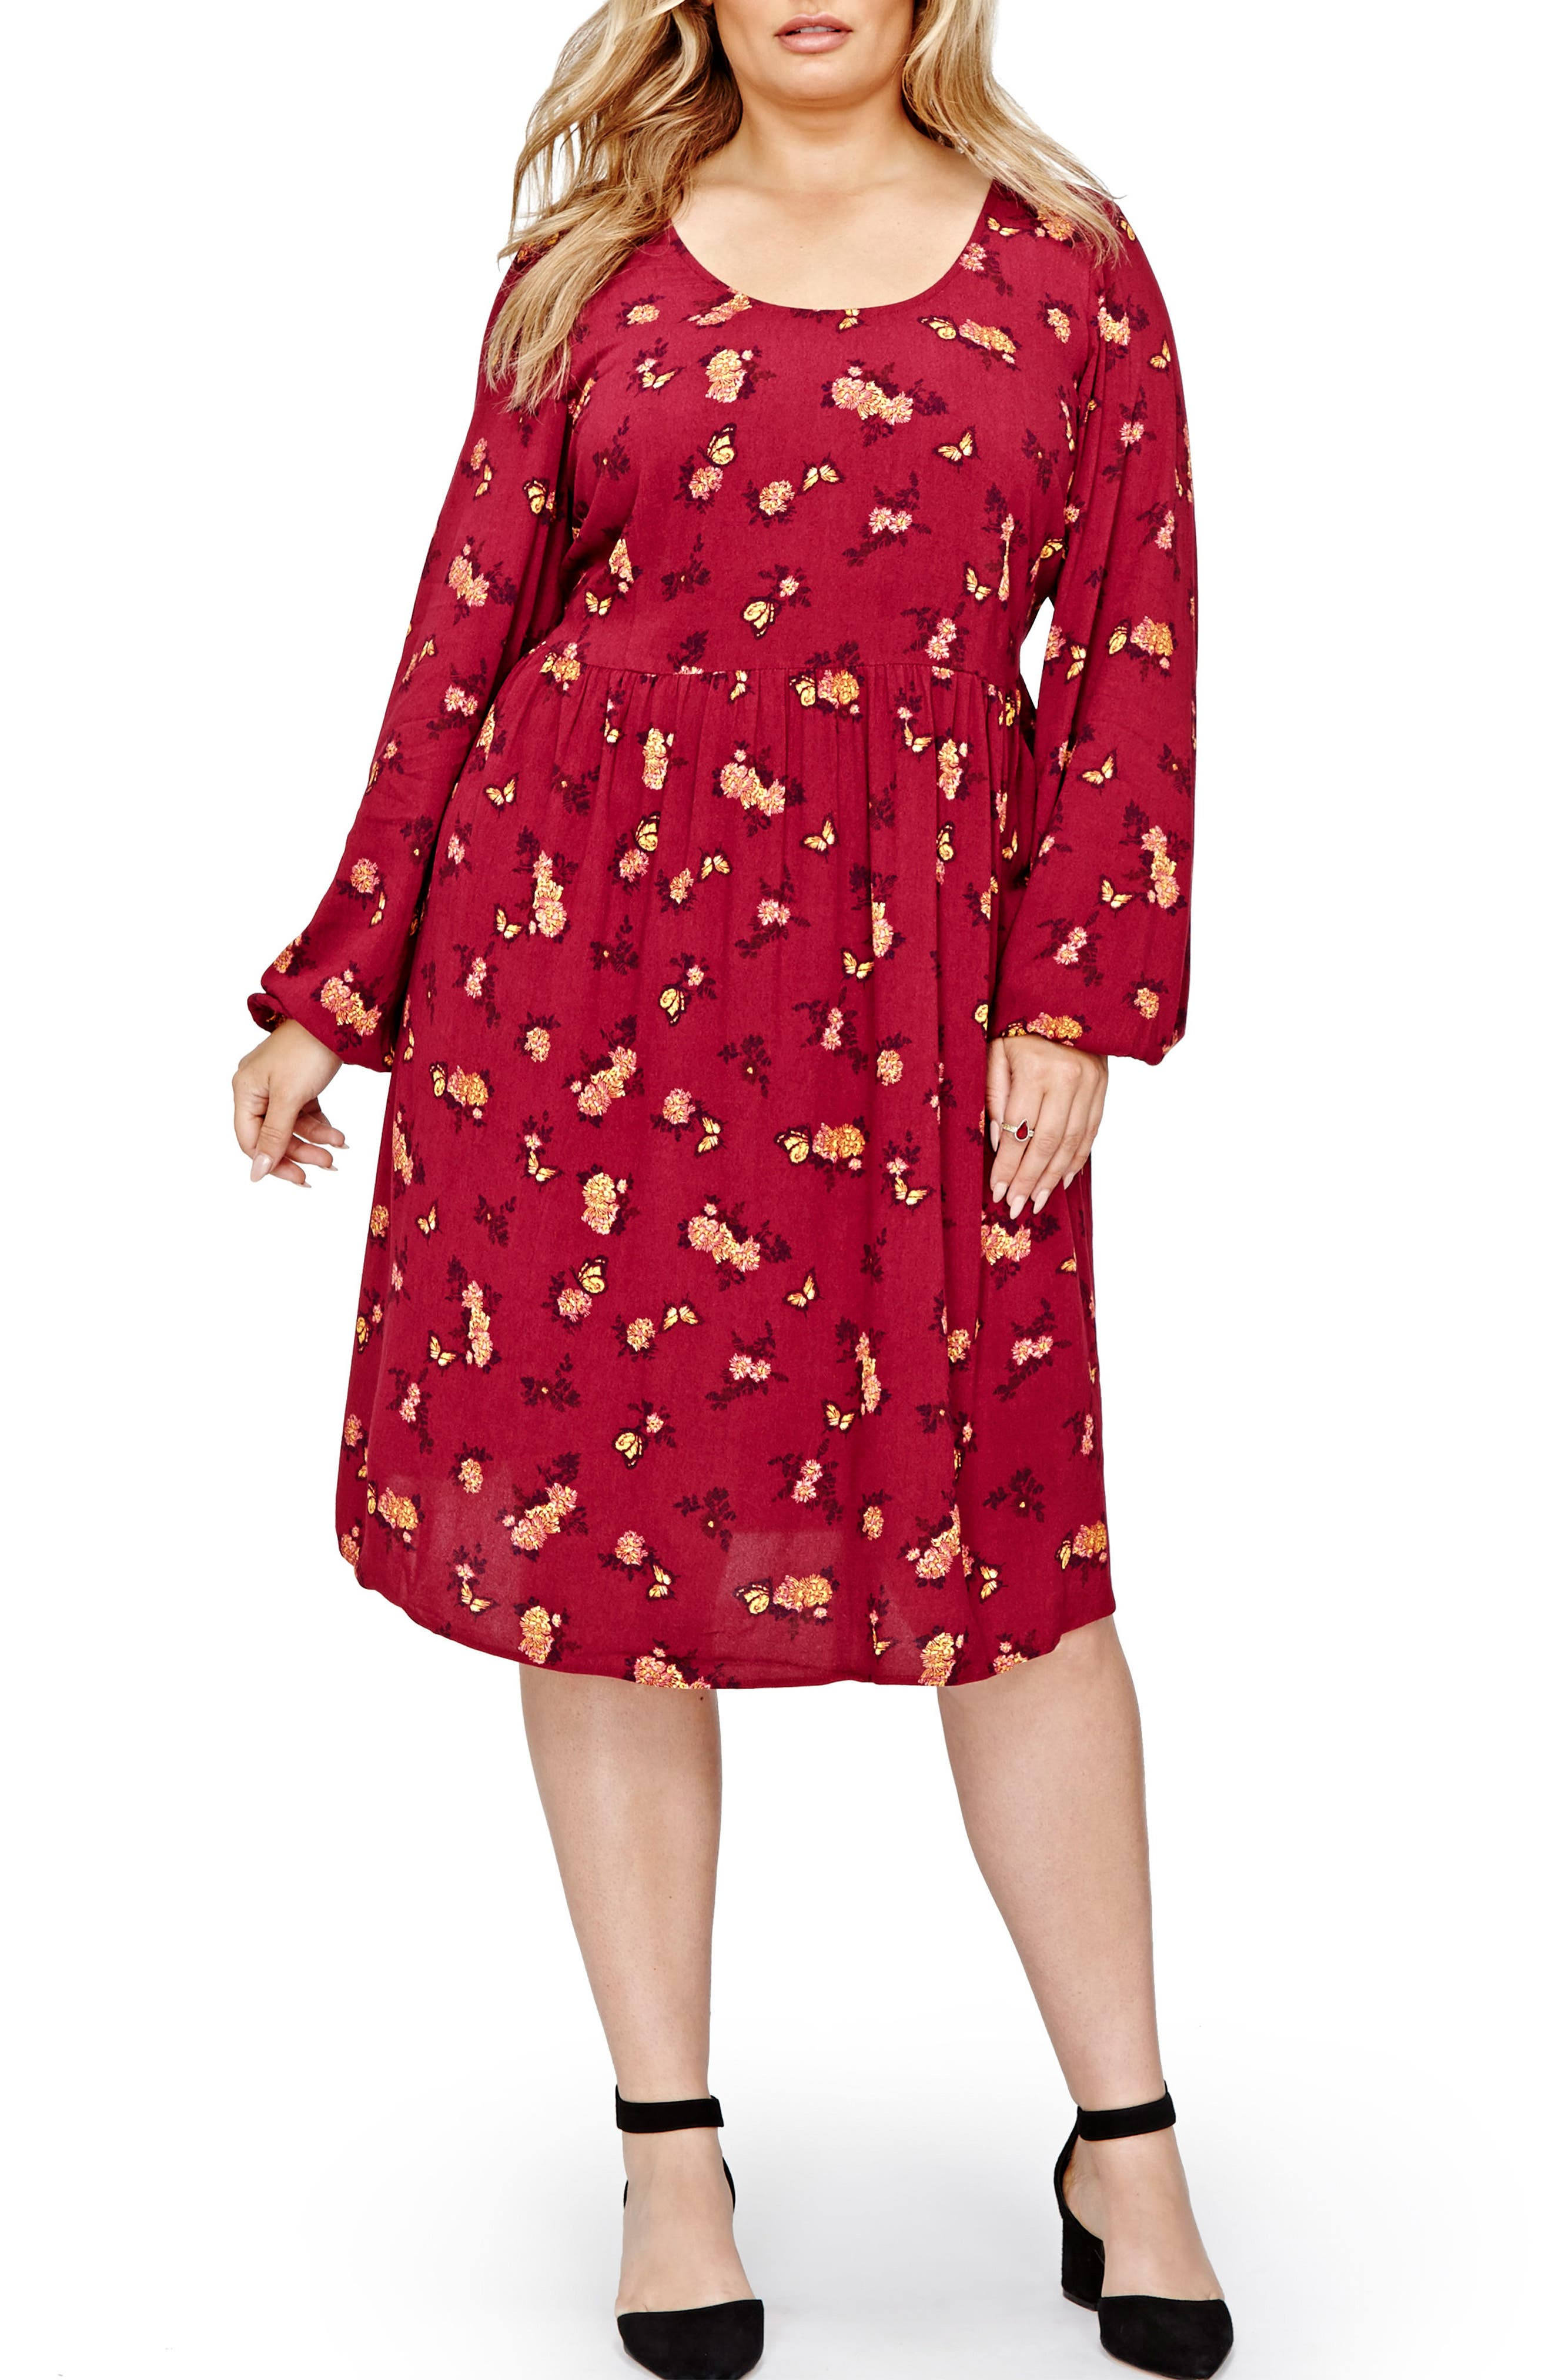 ADDITION ELLE LOVE AND LEGEND Floral Swing Dress (Plus Size)